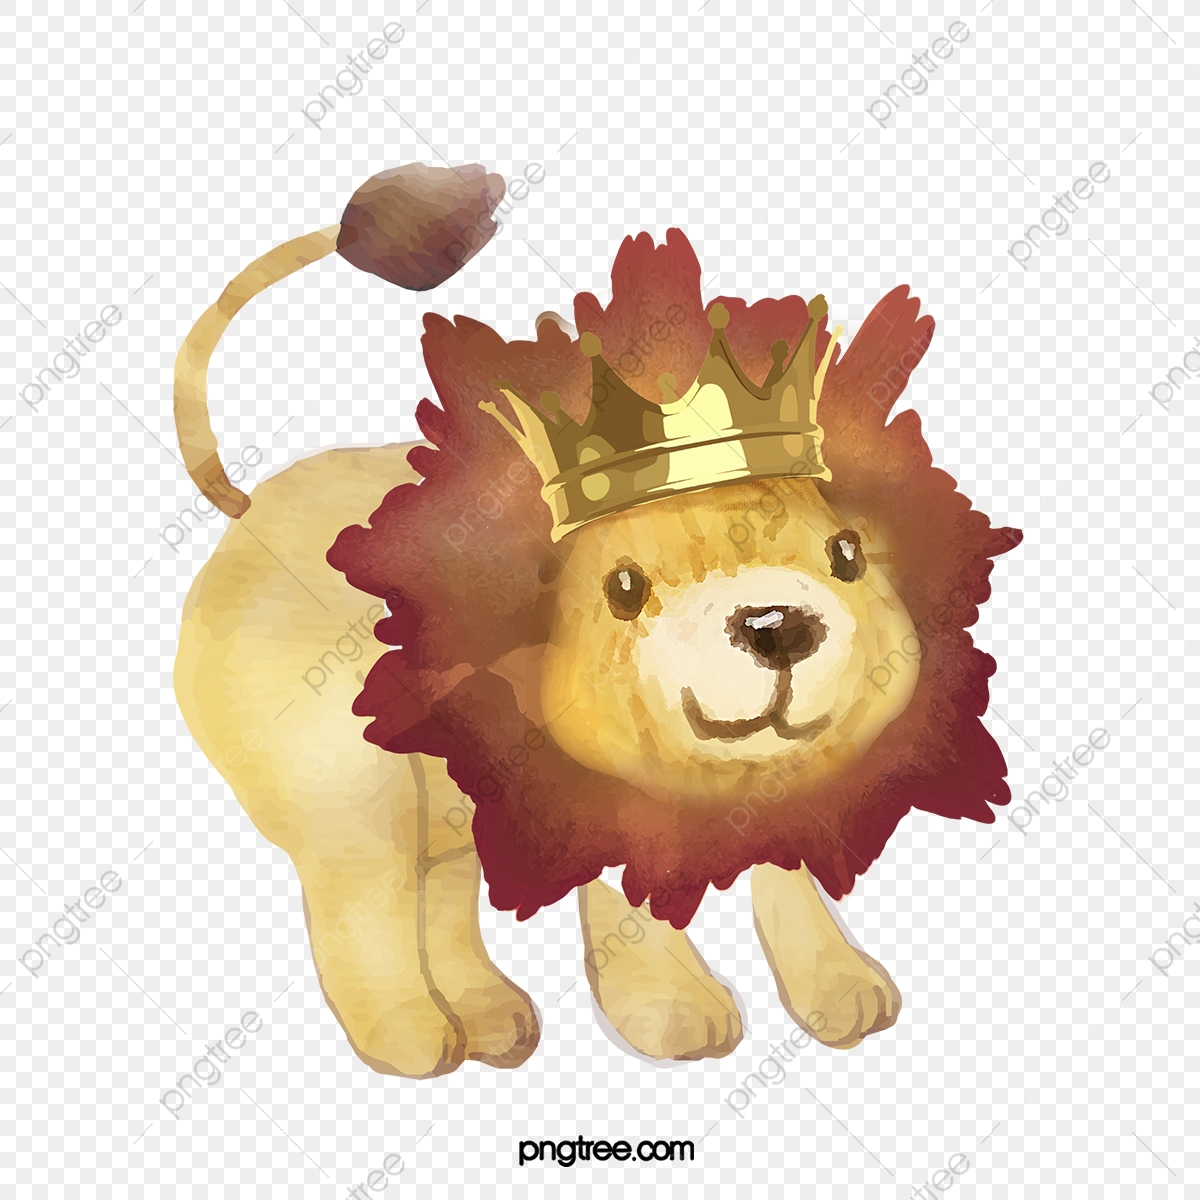 Crown Lion Hand Drawn Cartoon Watercolor Element Lion King Lion King Clipart Lion Crown Png Transparent Clipart Image And Psd File For Free Download A lion king above a trunk vector. https pngtree com freepng crown lion hand drawn cartoon watercolor element lion king 4961821 html